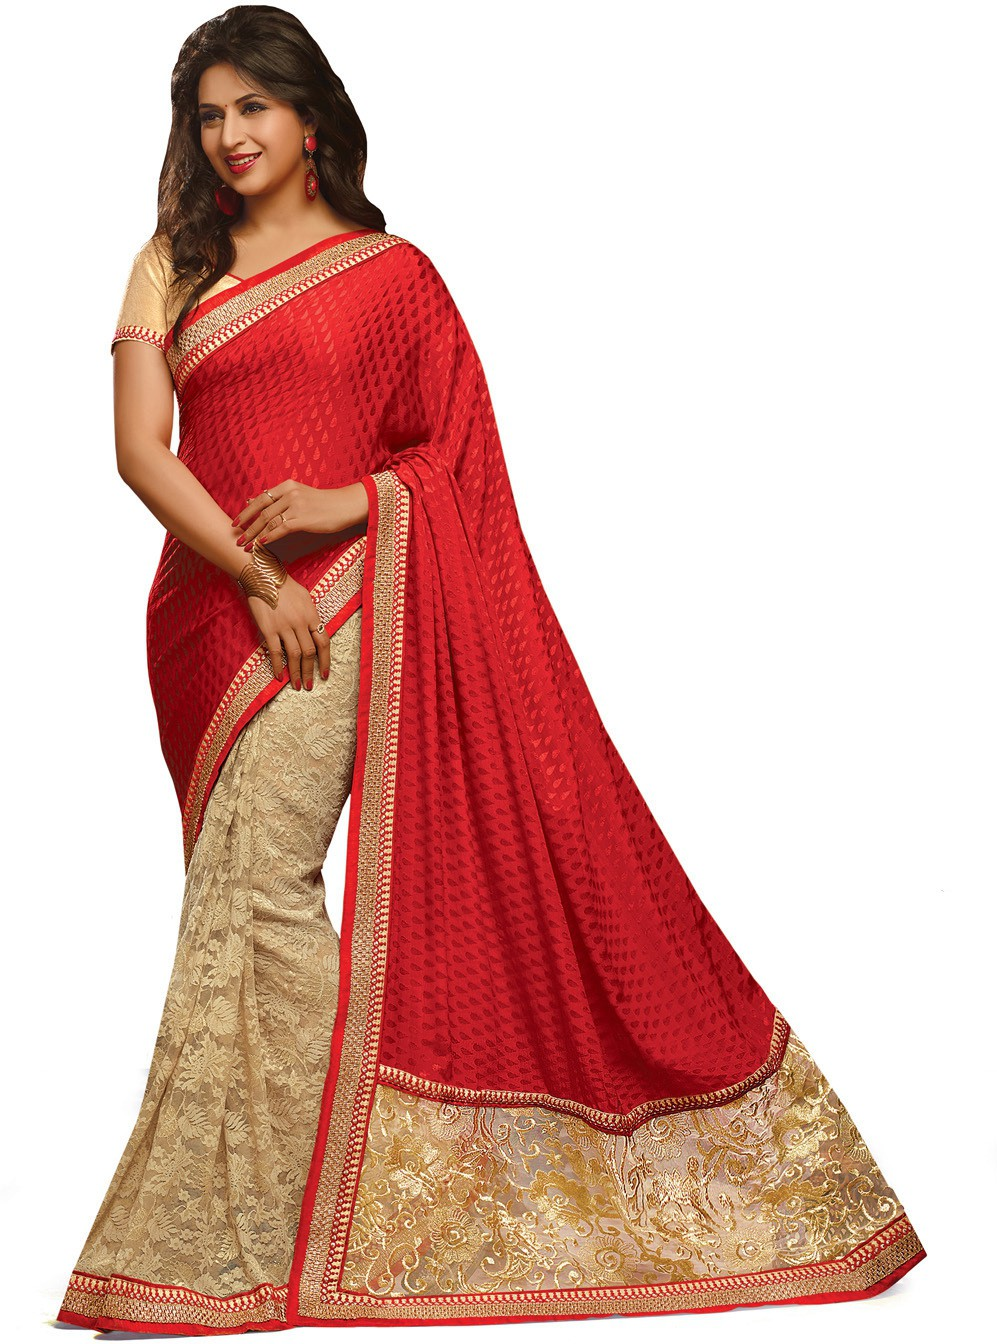 Indianbeauty Self Design, Embroidered Bollywood Jacquard, Pure Georgette Sari(Red, Beige)